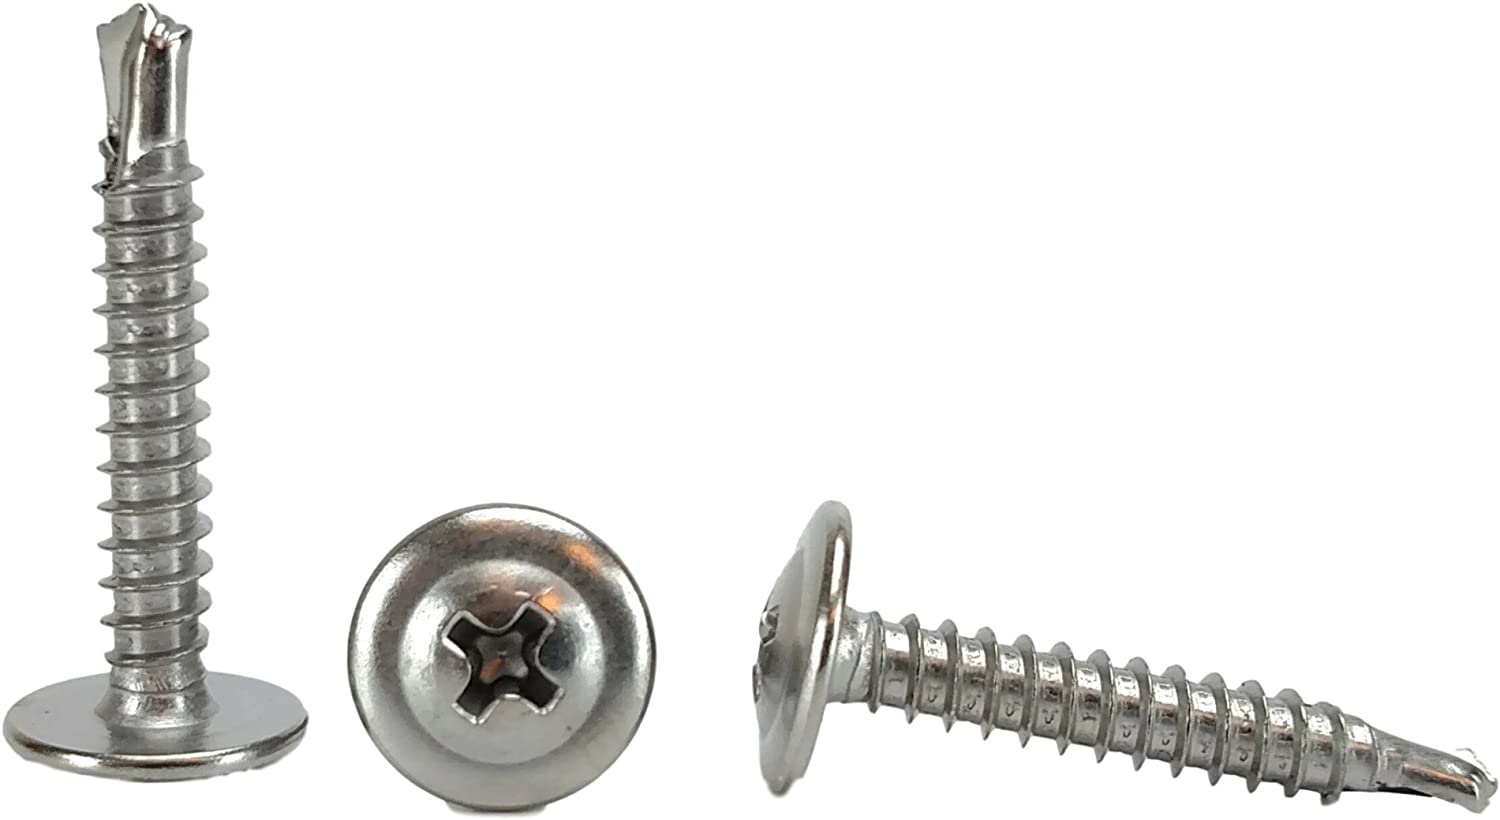 Bright Finish #10 x 5//8 Flat Head Sheet Metal Screws Stainless Steel 18-8 Full Thread Self-Tapping Quantity 100 by Fastenere Phillips Drive